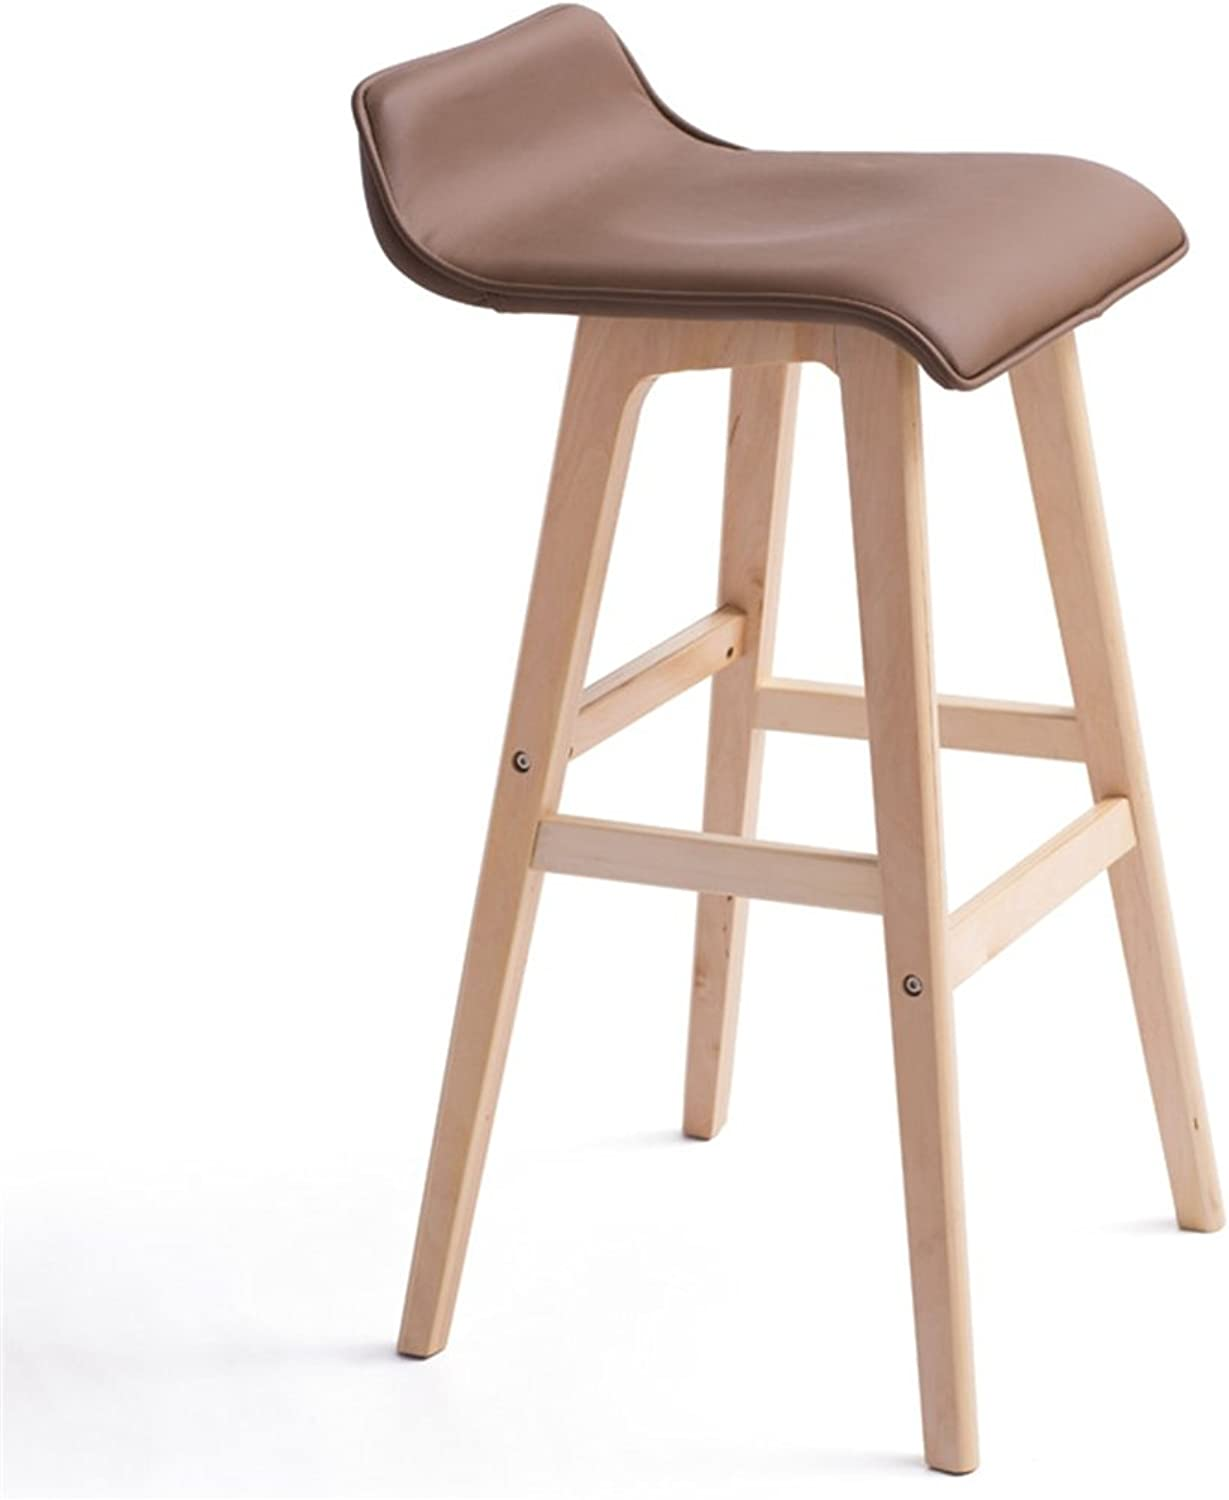 Chair Bar Chair Breakfast Home Chair Simple High Chair Solid Wood Frame Brown Seat (color   Wood color, Size   Height 65cm)